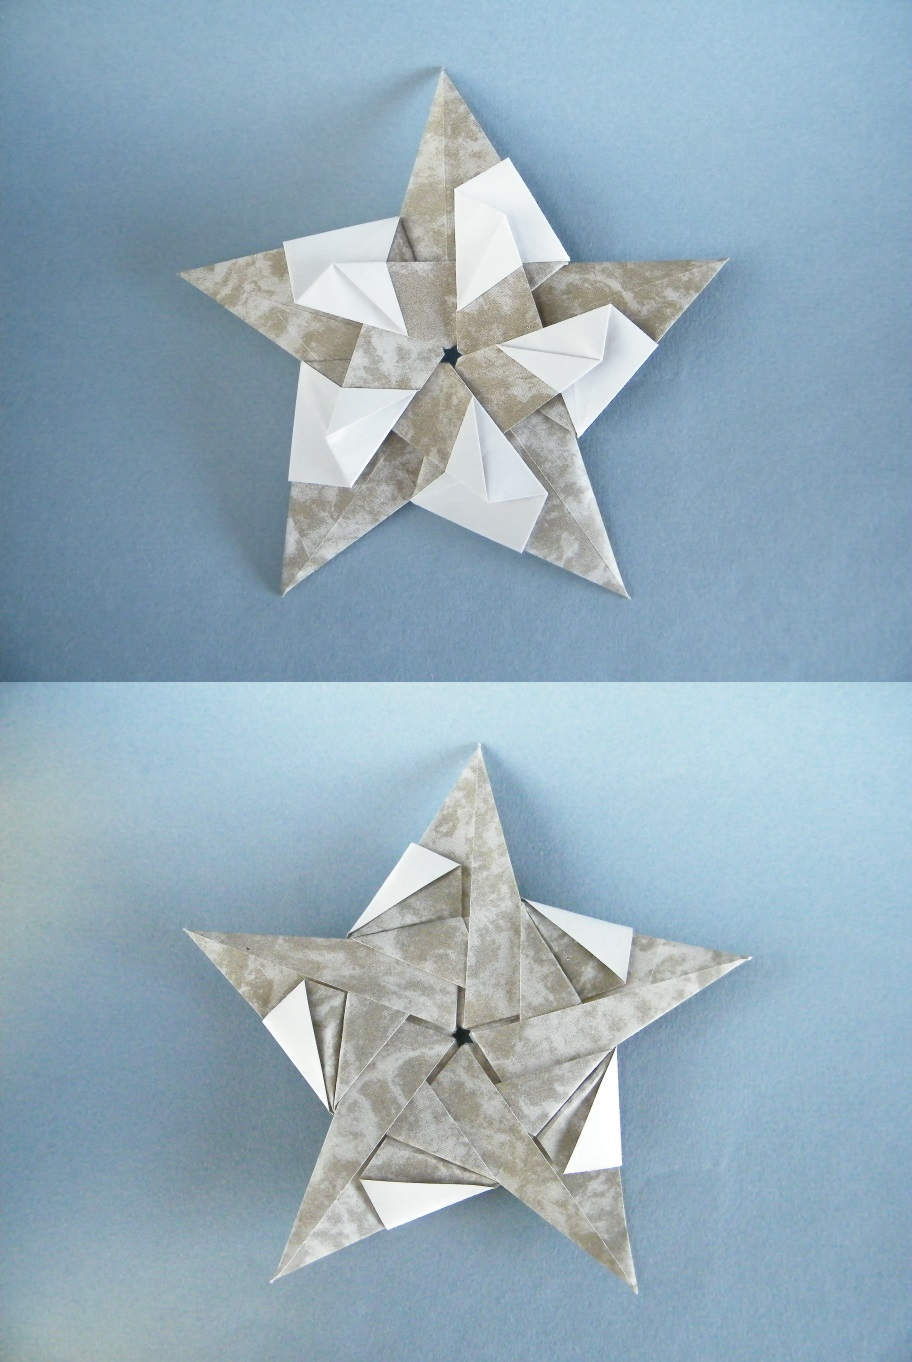 Origami Tommelise star by Natalia Romanenko on giladorigami.com